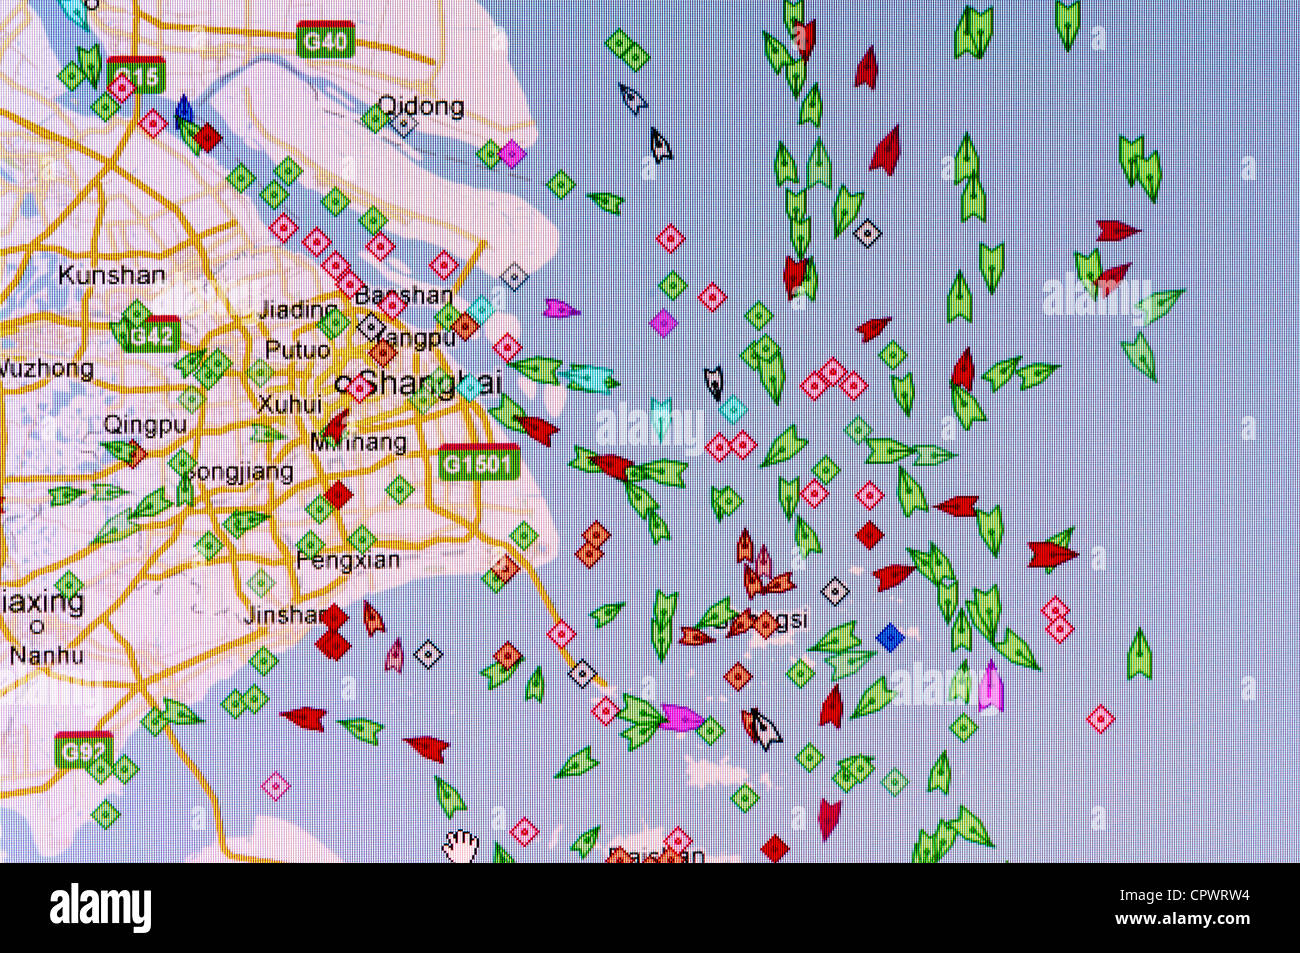 Screen shot showing real time shipping traffic from Shanghai in the East China Sea - Stock Image